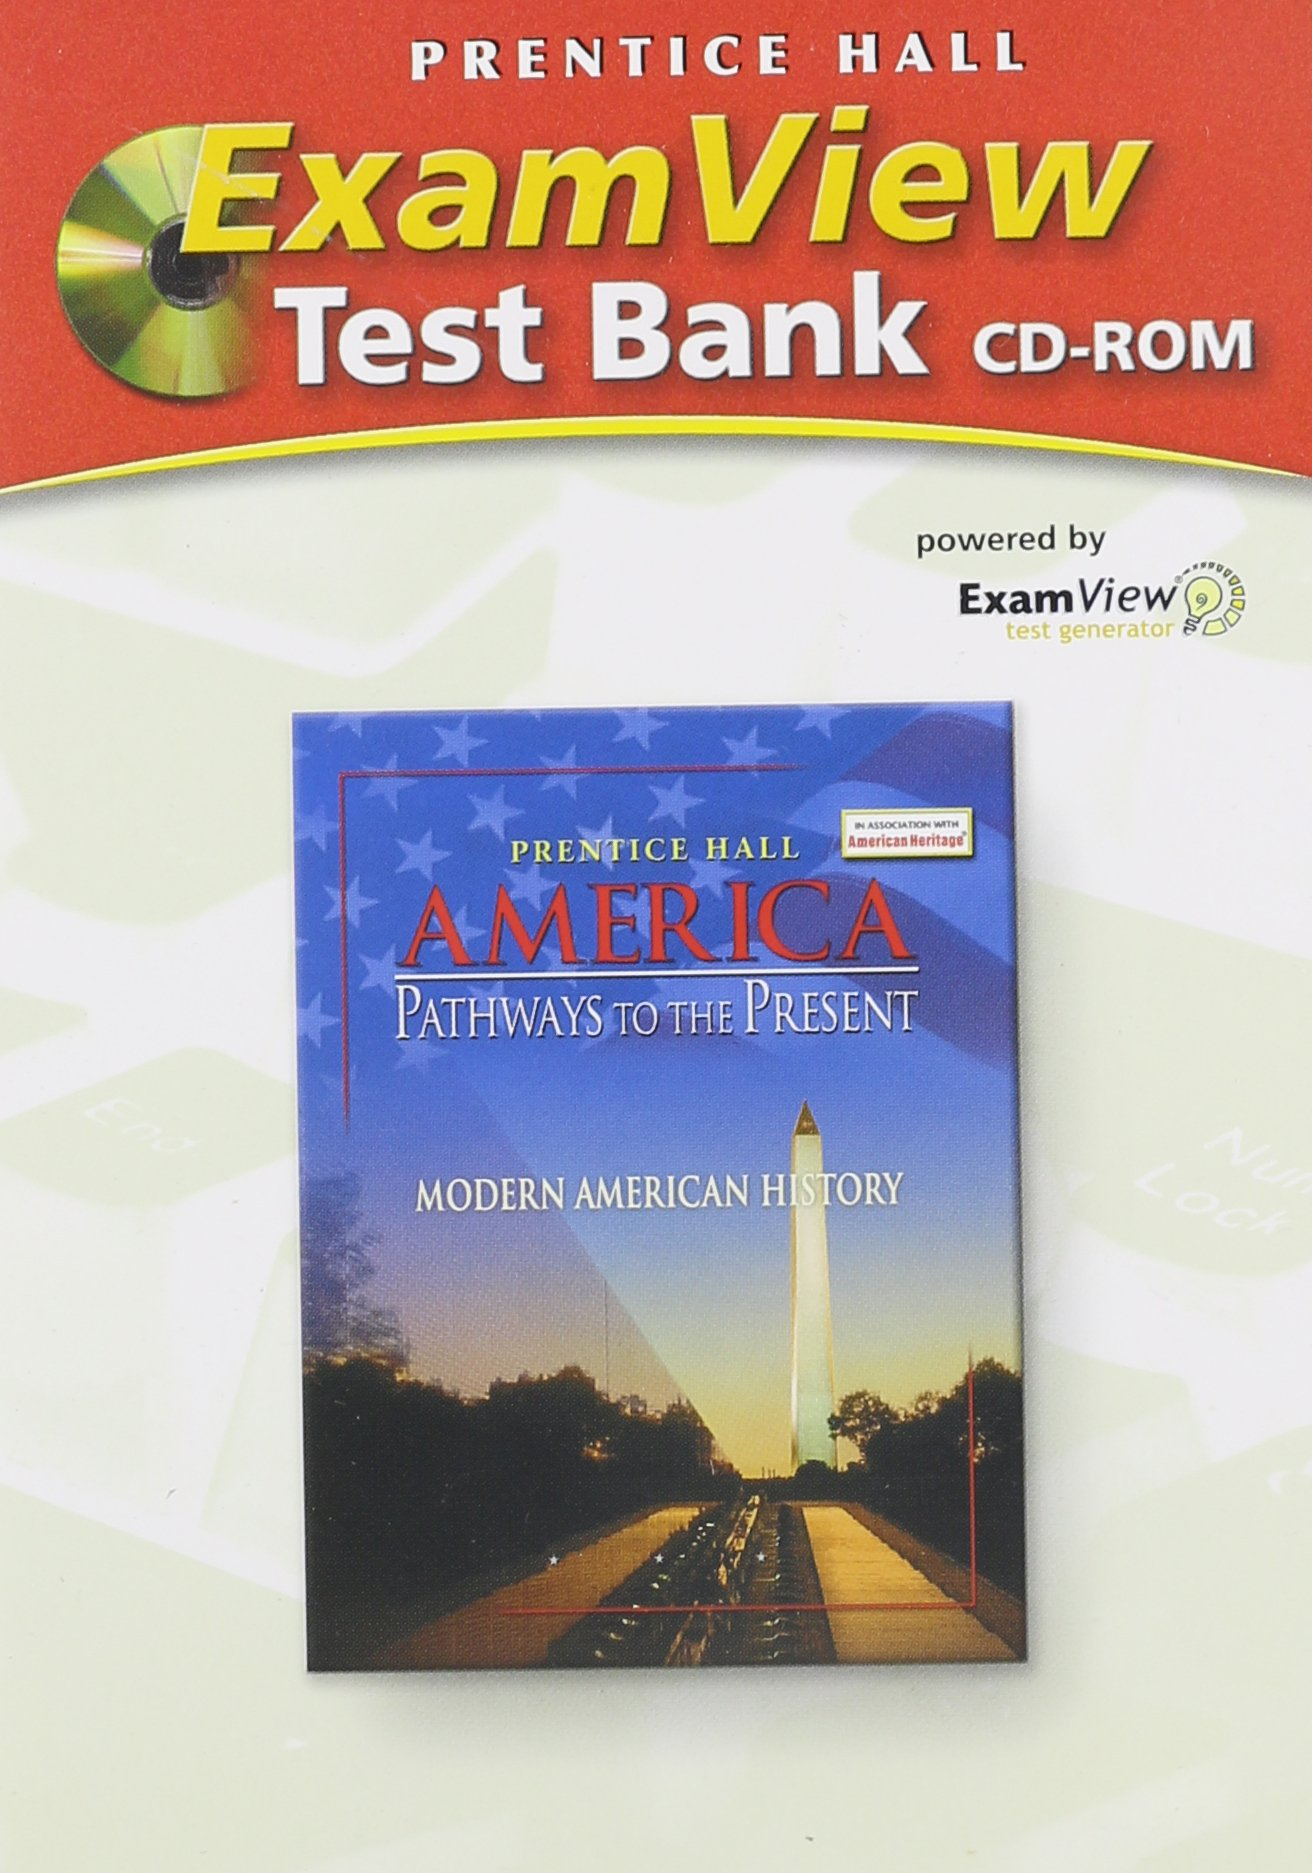 Exam View Test Bank CD-ROM for America Pathways to the Present: Modern American History by Prentice Hall